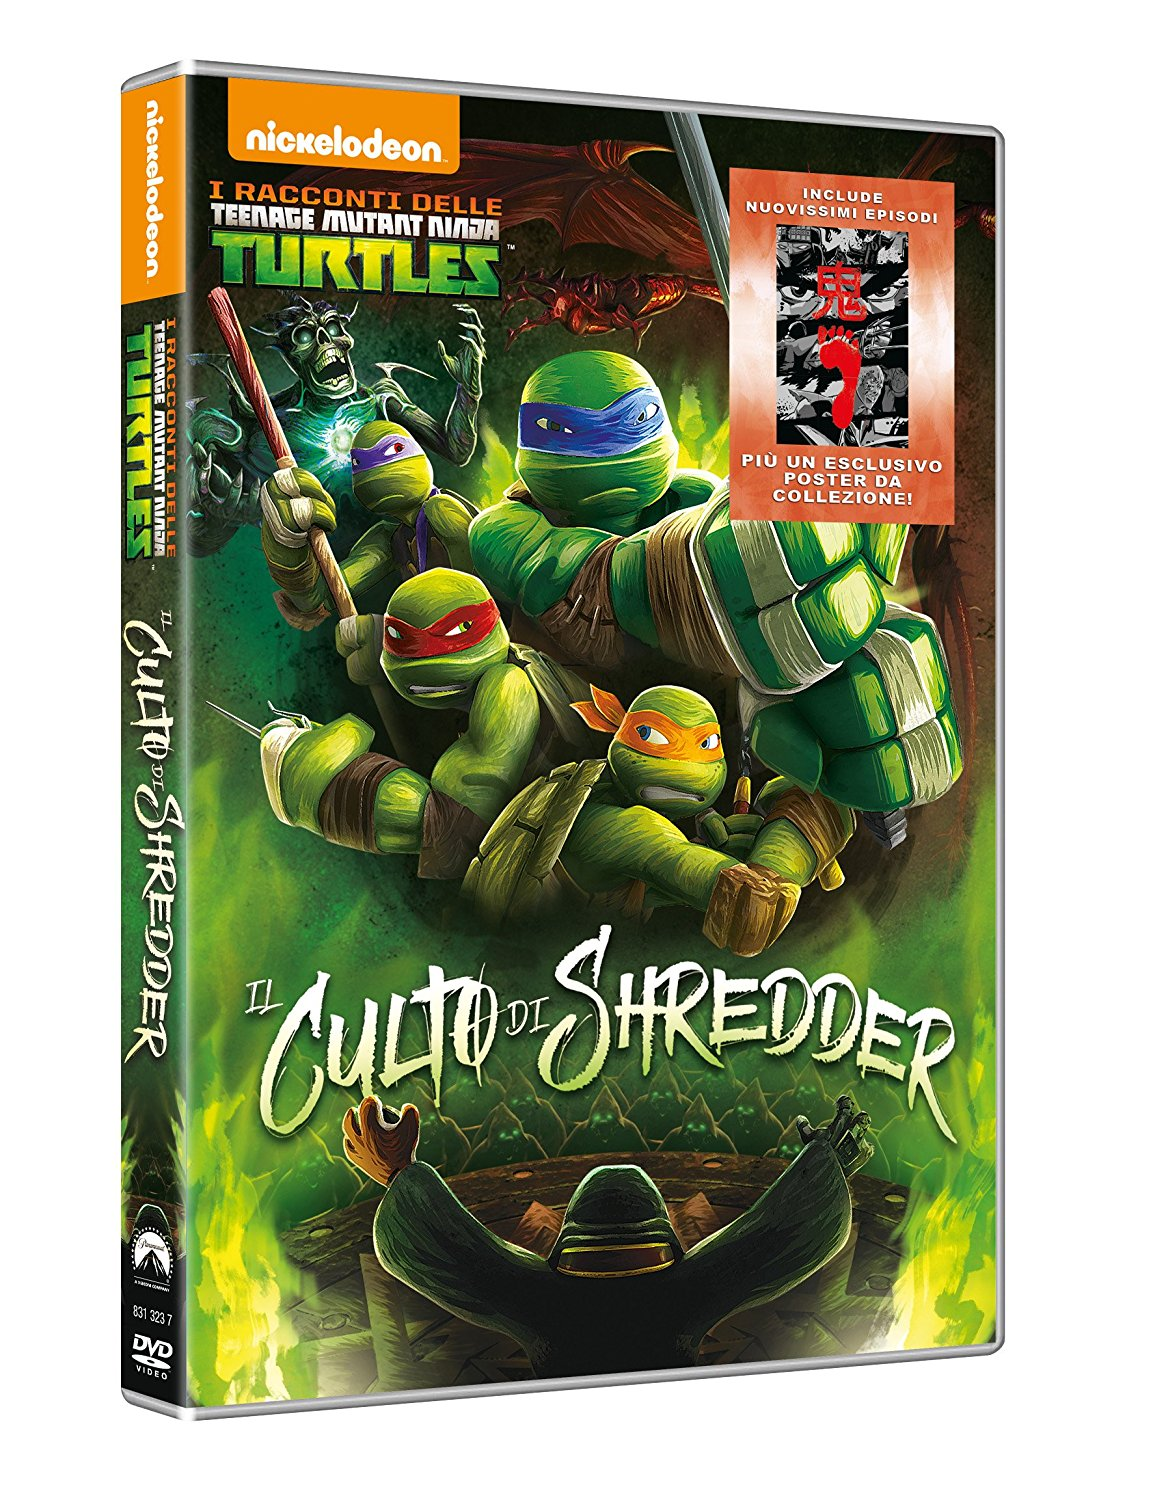 I RACCONTI DELLE TEENAGE MUTANT NINJA TURTLES - THE CULT OF SHREDDER (DVD)